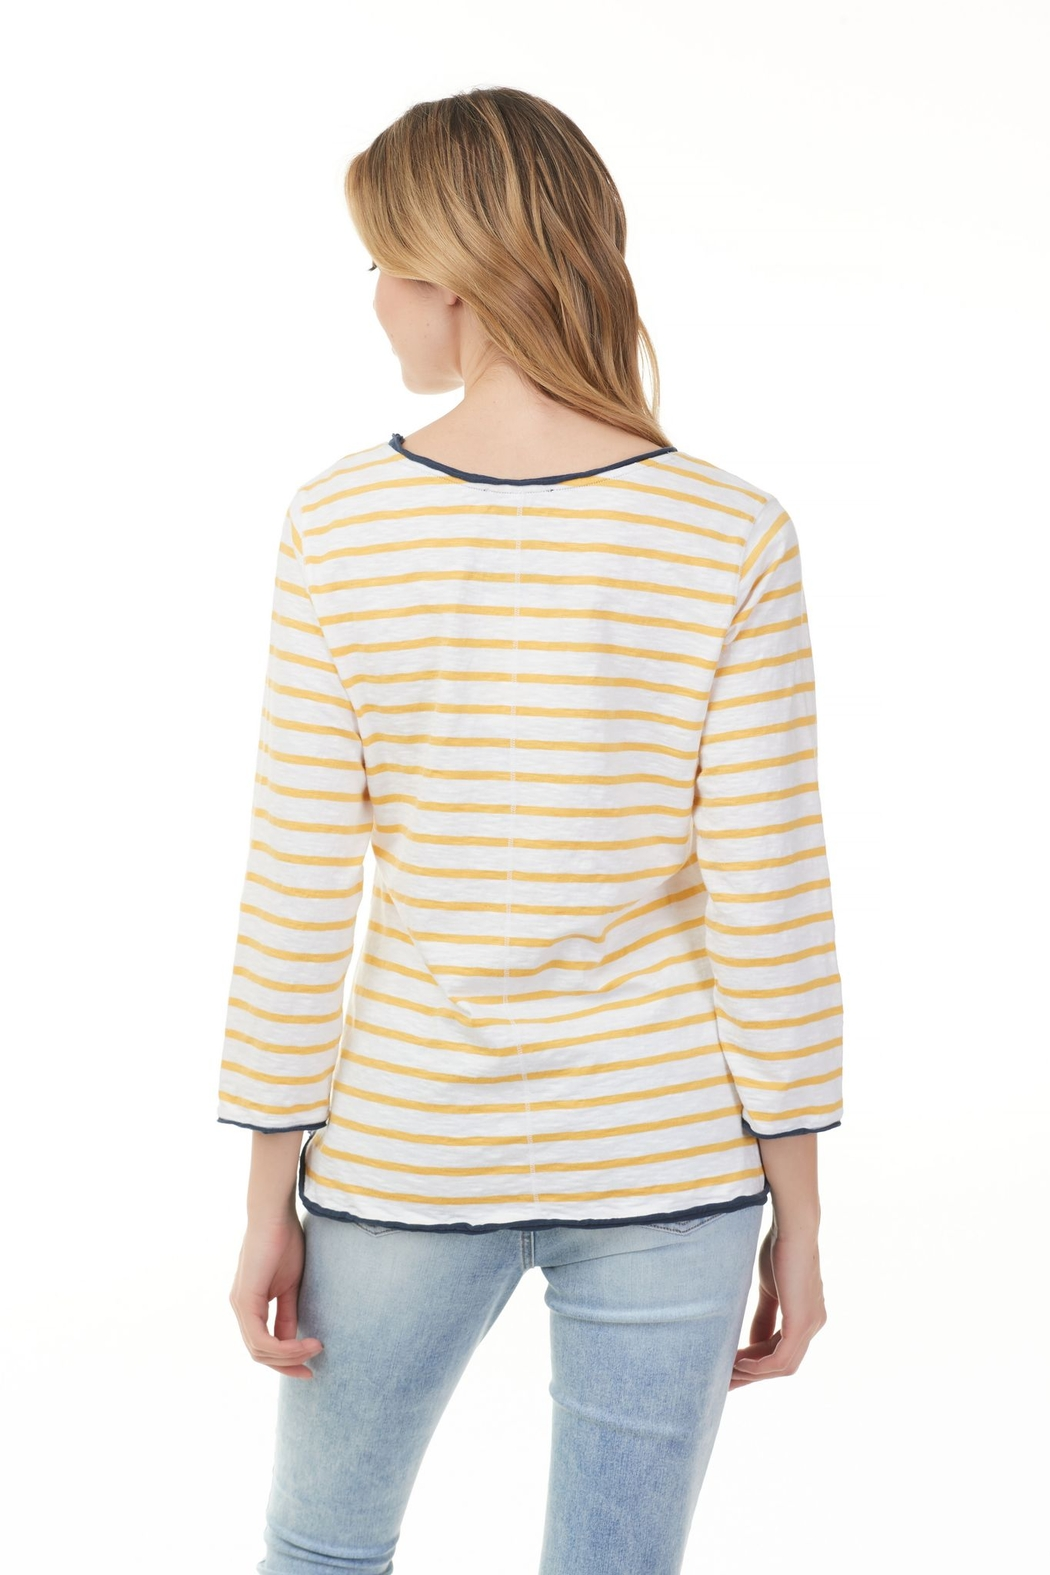 Charlie B.  Marigold and White Stripe Tee - Front Full Image